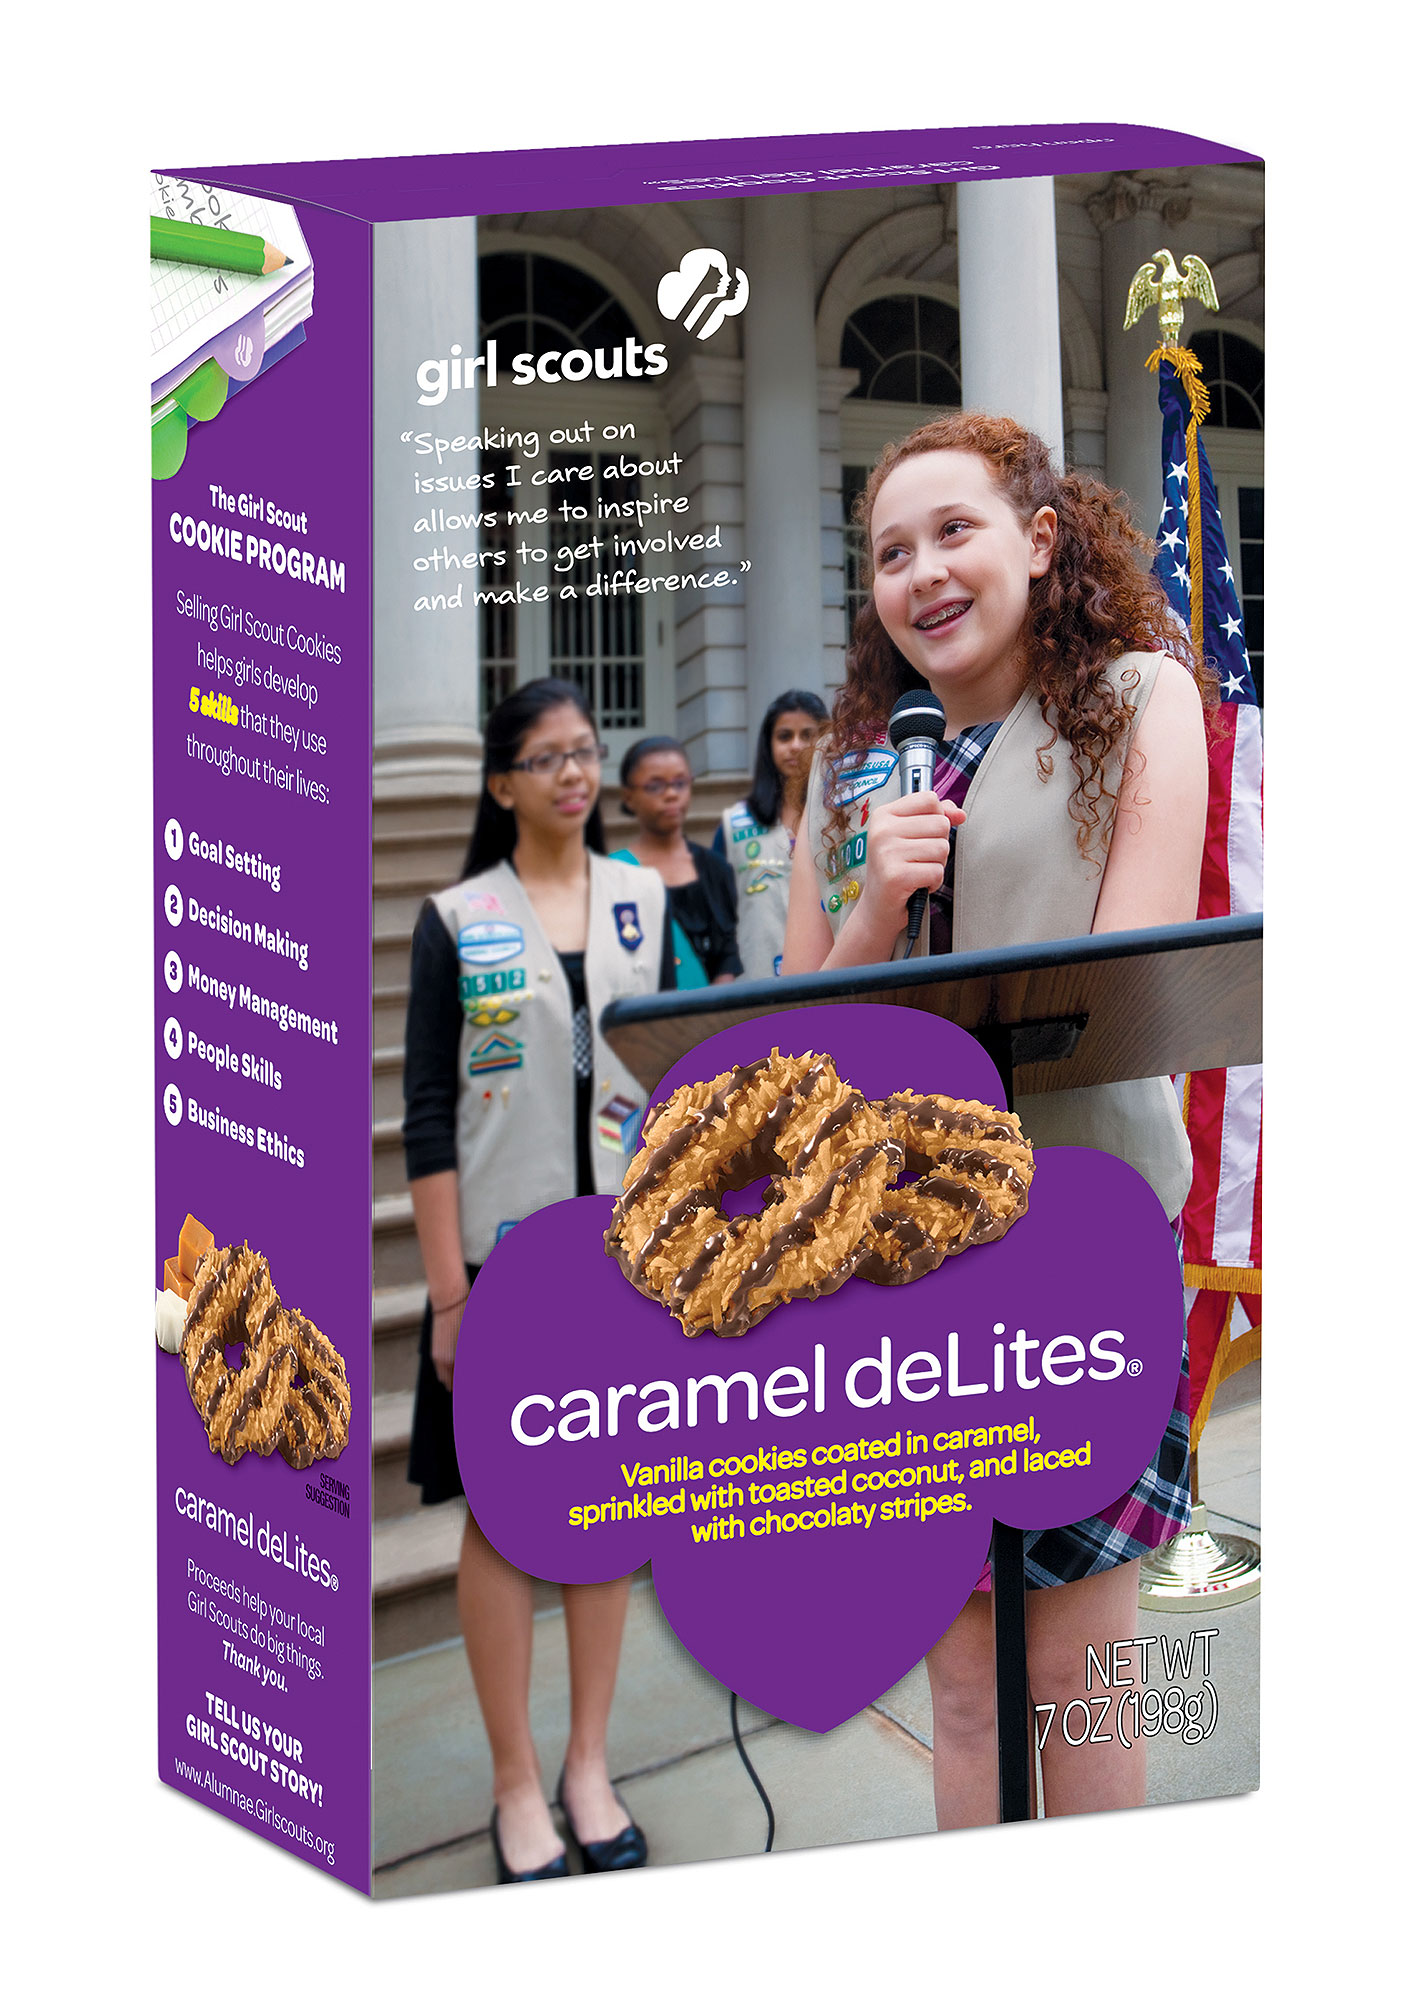 girl-scout-cookies-1